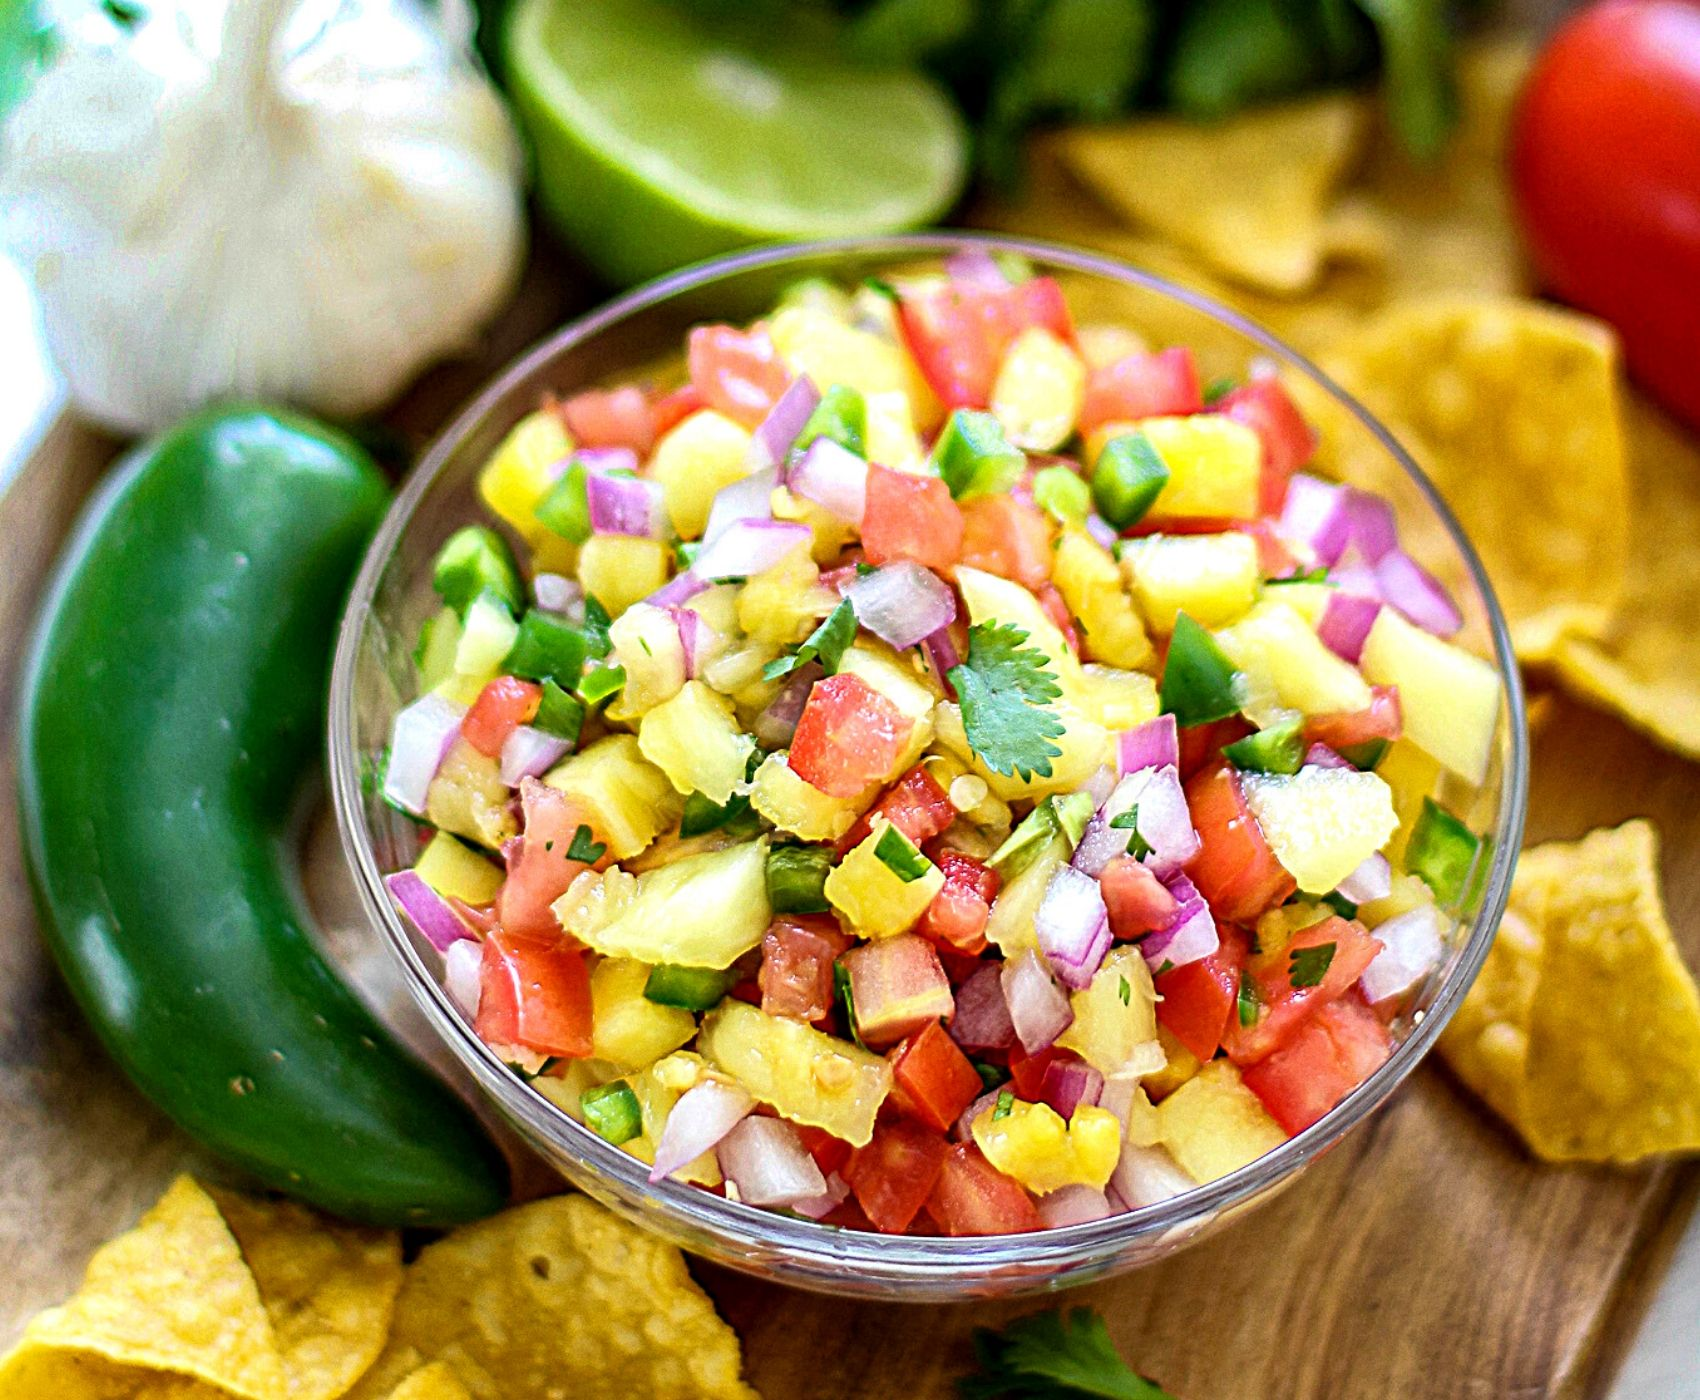 Fresh Pineapple Salsa is an incredibly easy recipe that wows both in flavor, and it's colorful presentation. With a few simple ingredients, you have a healthy snack, appetizer, or recipe topper that's not only flavorful; it's light and 100% delicious!